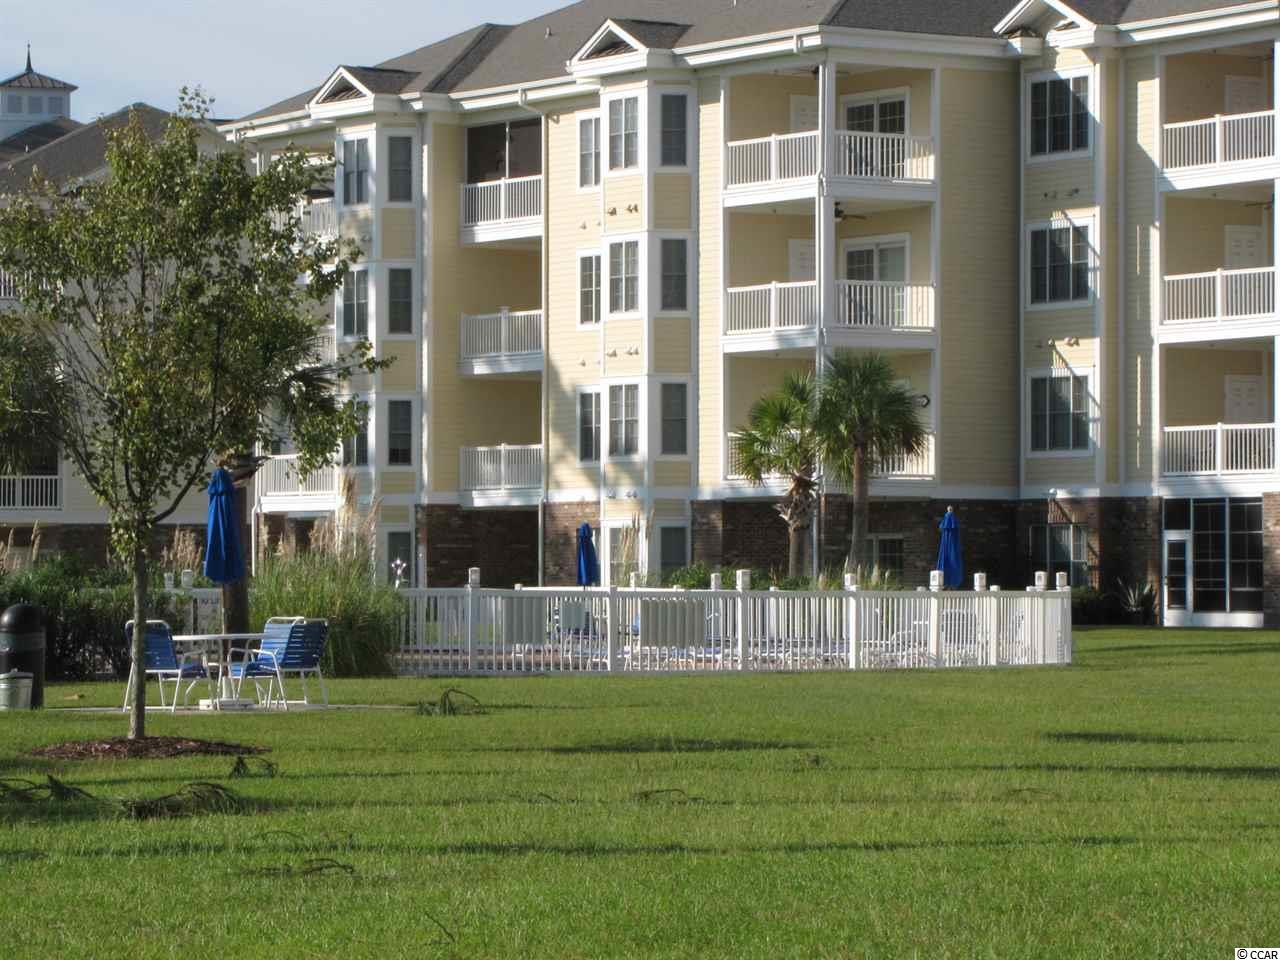 Condo in Magnolia Pointe : Myrtle Beach South Carolina